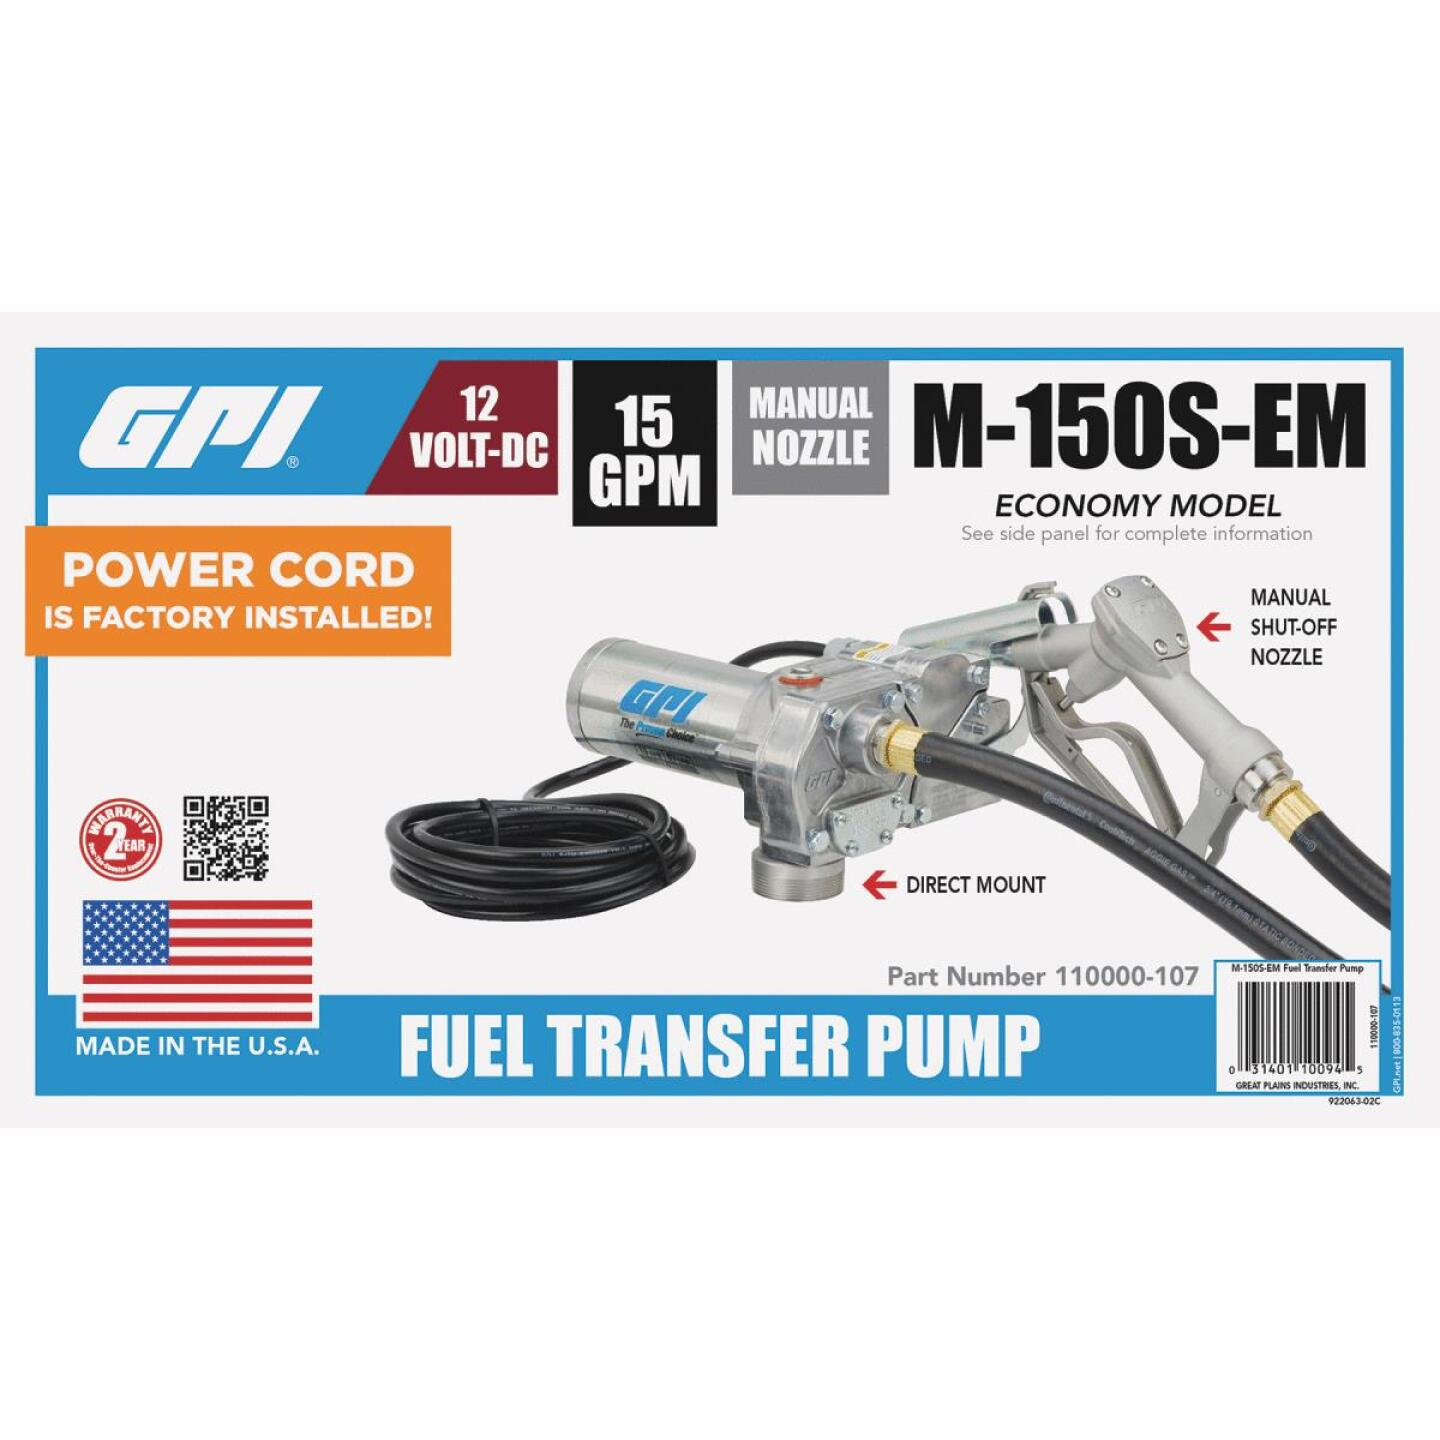 GPI 12V DC, 15 GPM Manual Economy Fuel Transfer Pump Image 2